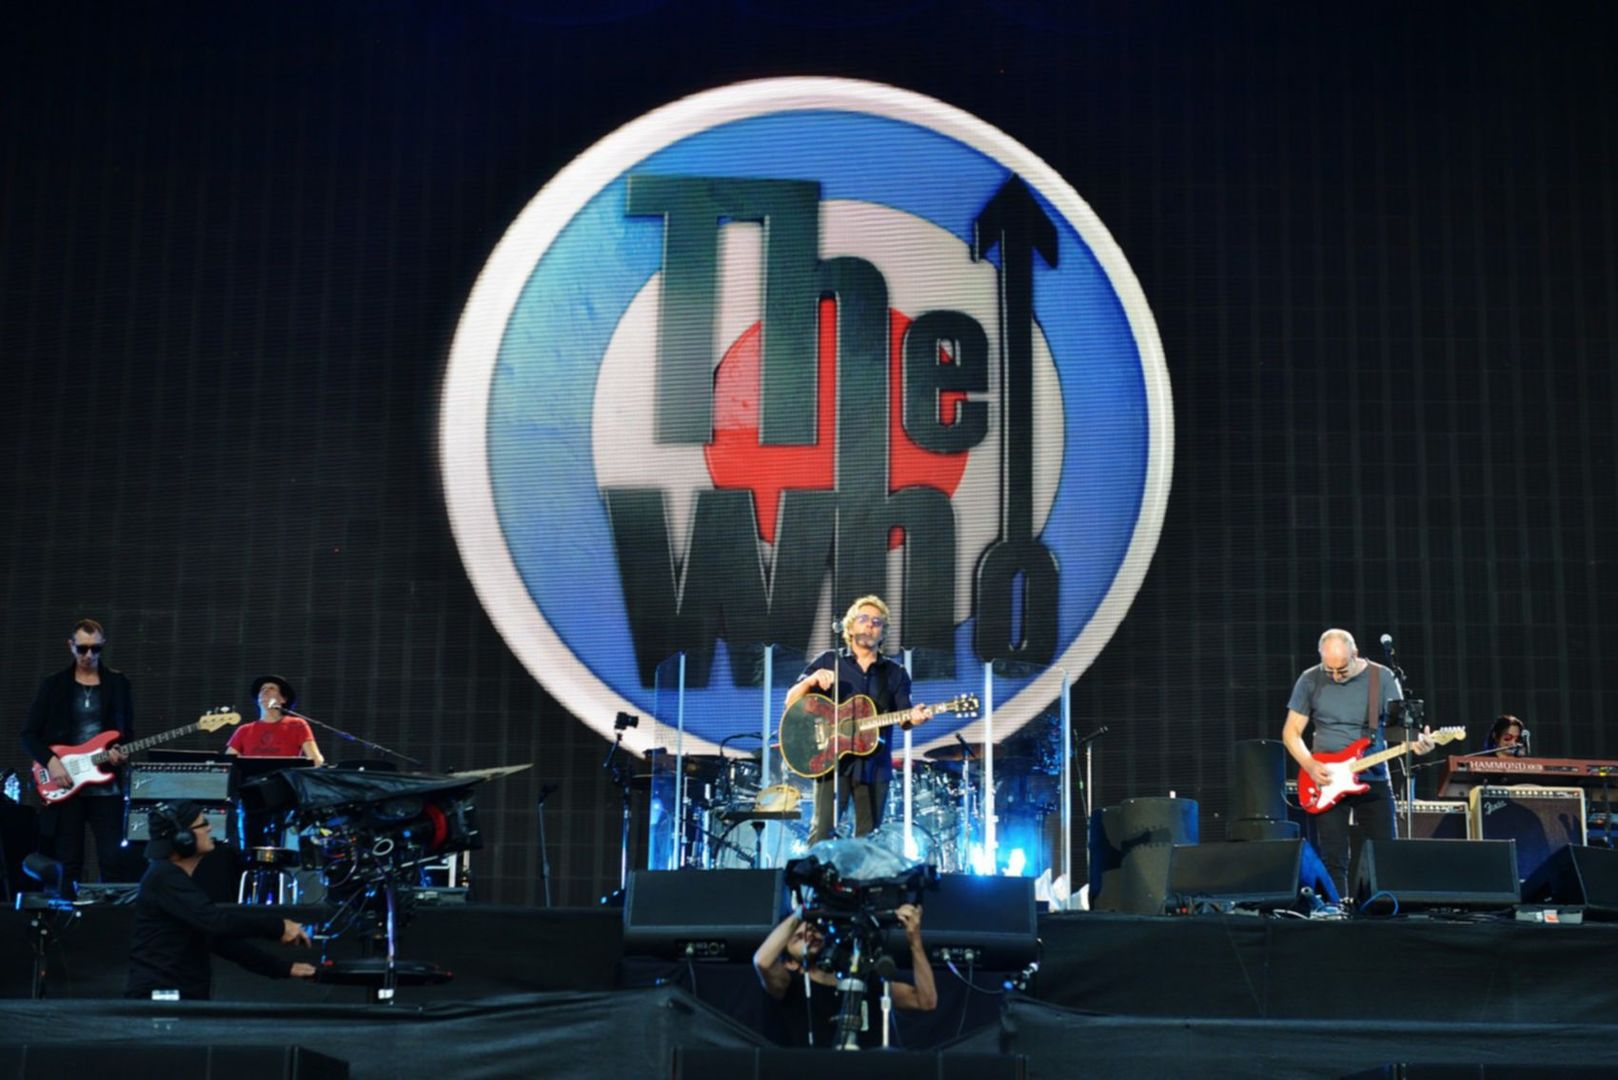 THE WHO Bst Summer festival - Hyde Park London, 26 Juin.2015 Photo: Fabrice DEMESSENCE.